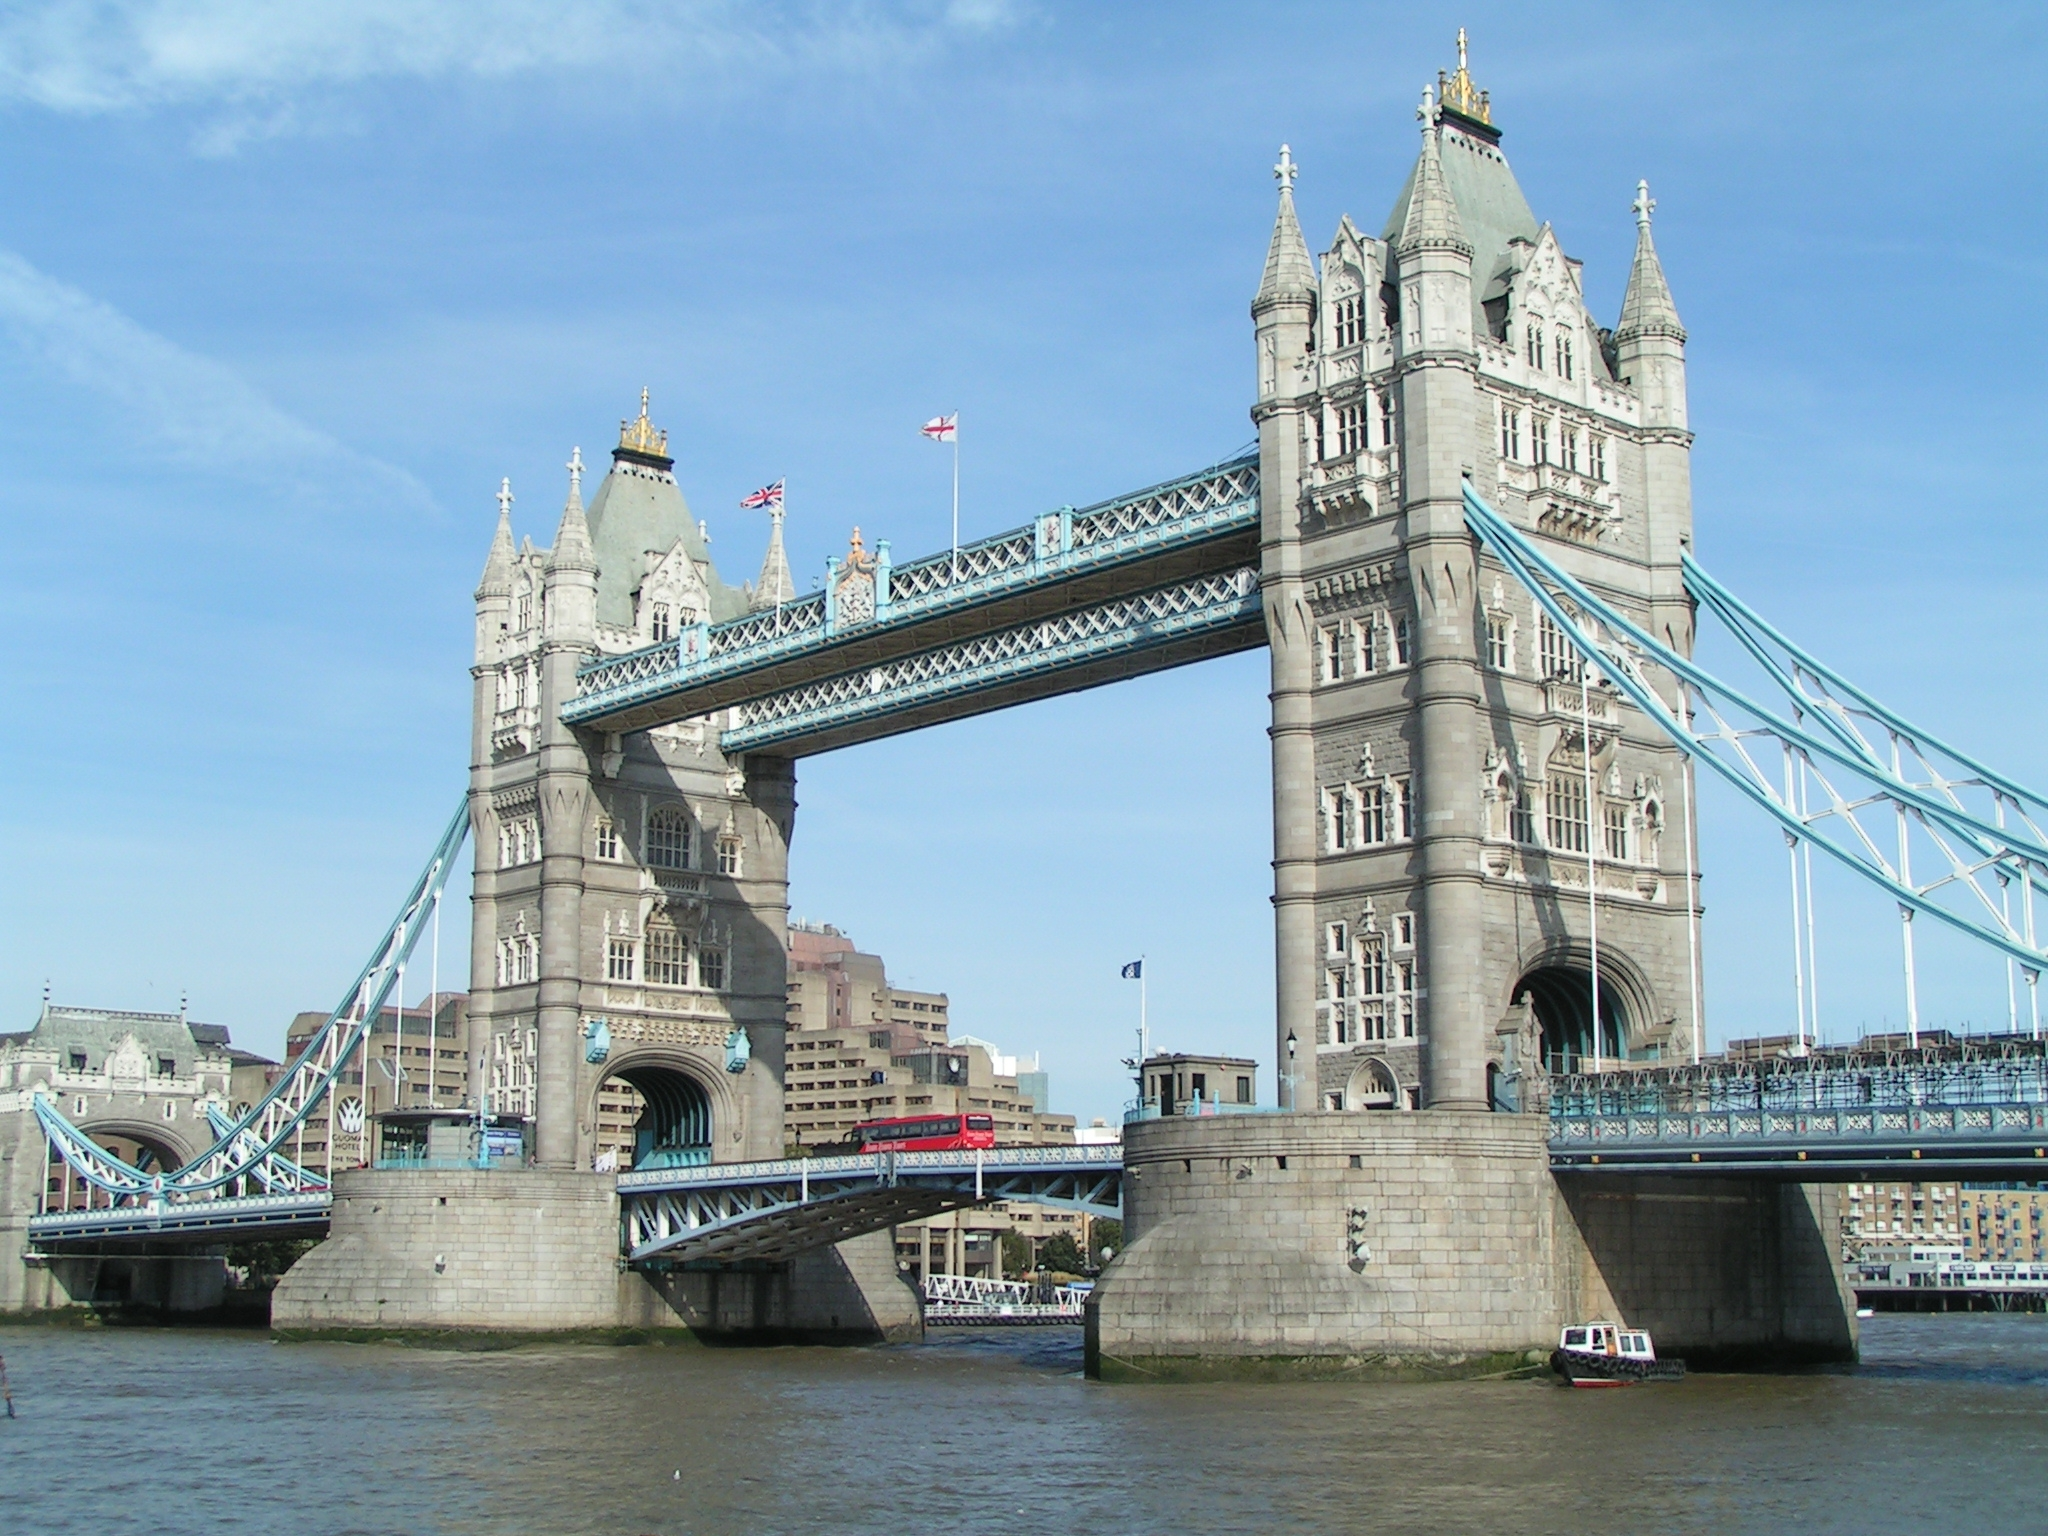 tower bridge bascule bridge in london travelling moods. Black Bedroom Furniture Sets. Home Design Ideas